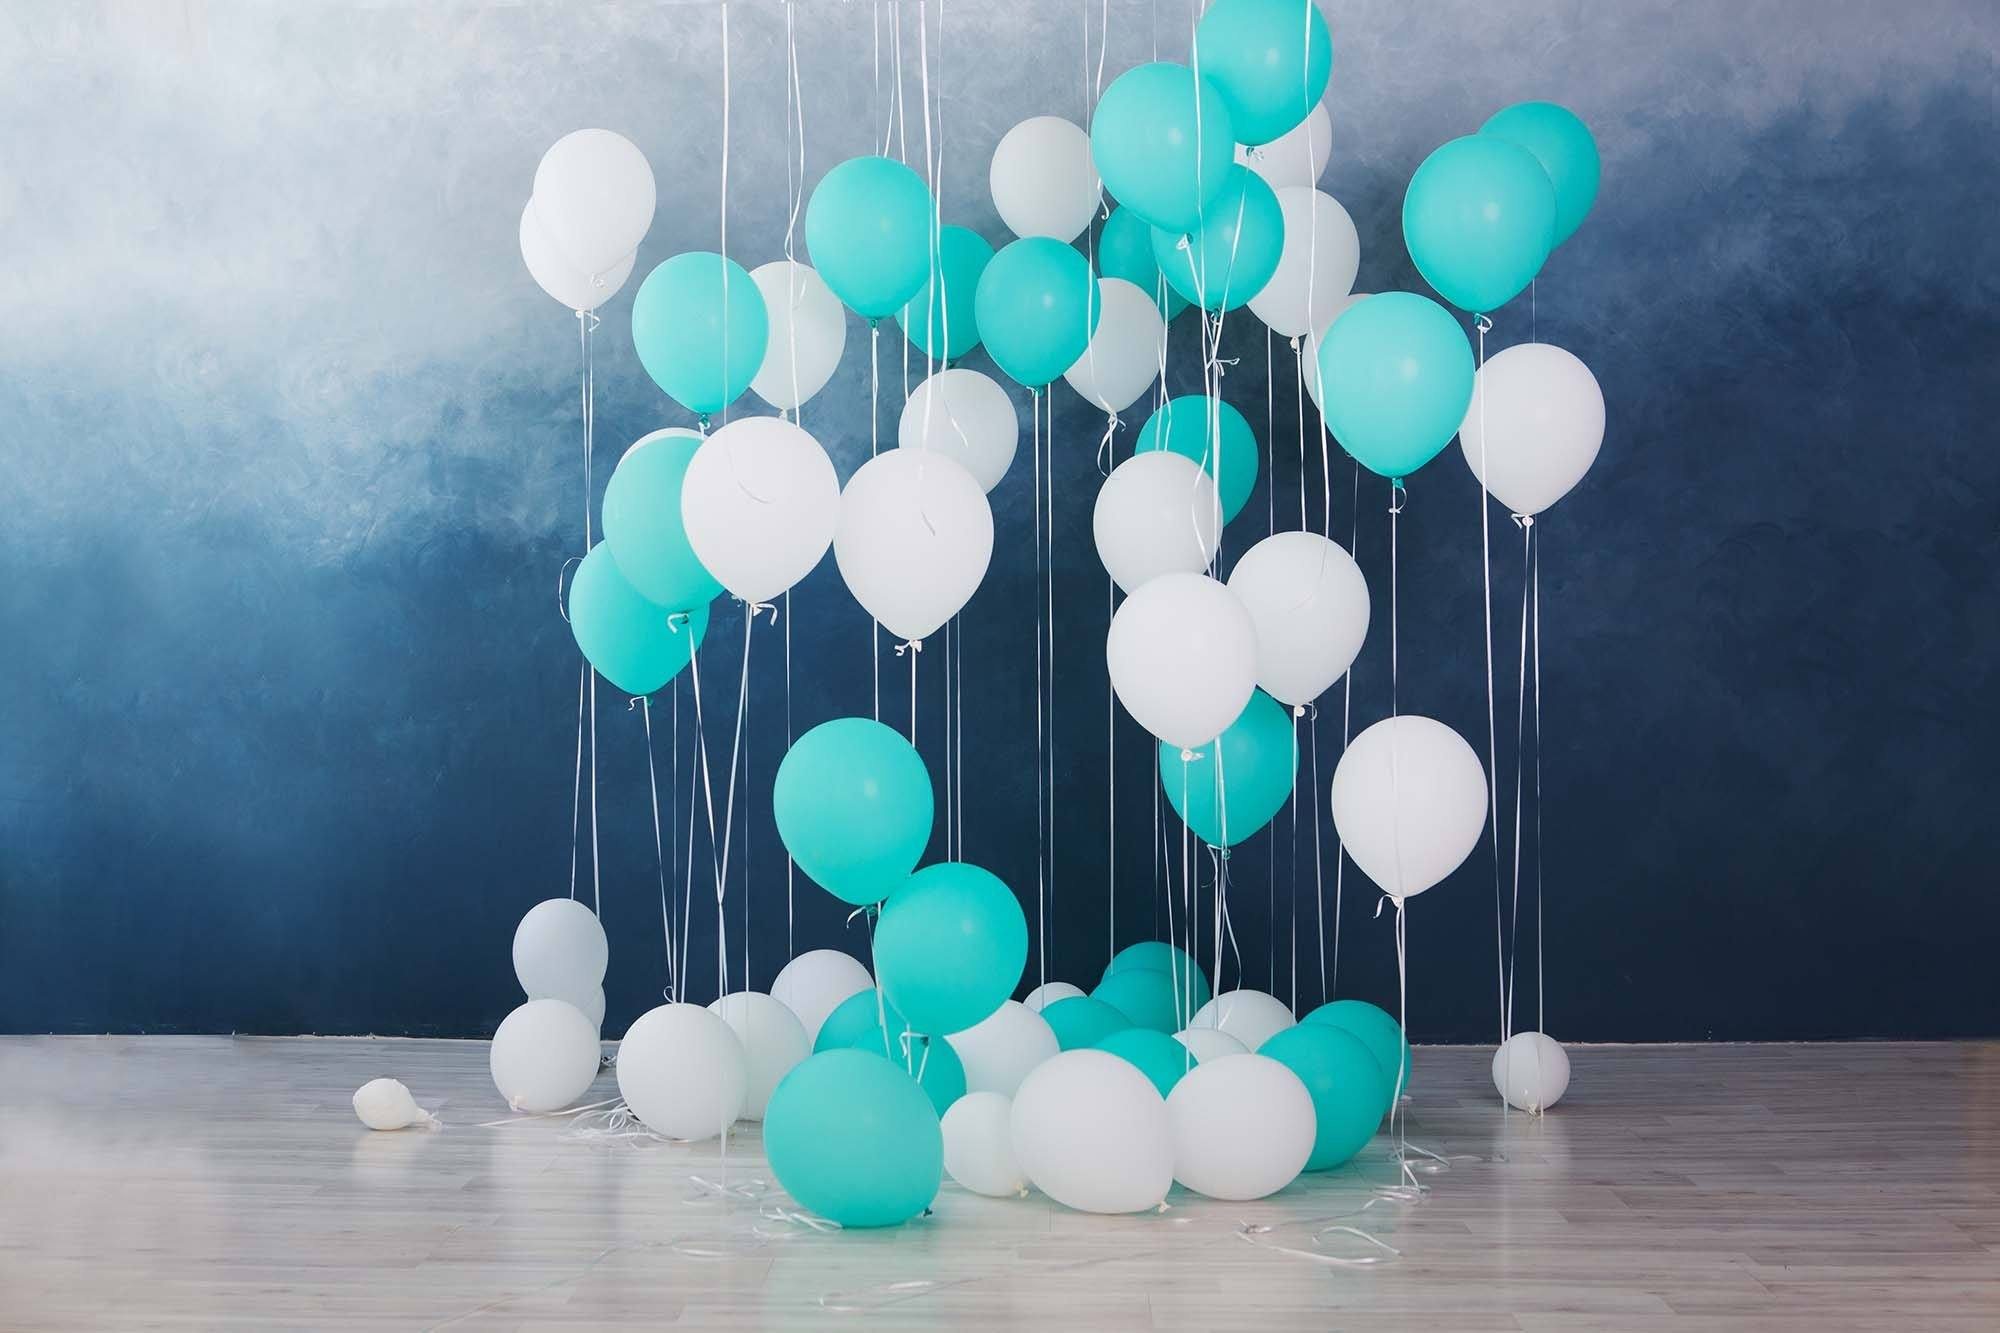 White Baby Blue Balloons Before Dark Blue Background